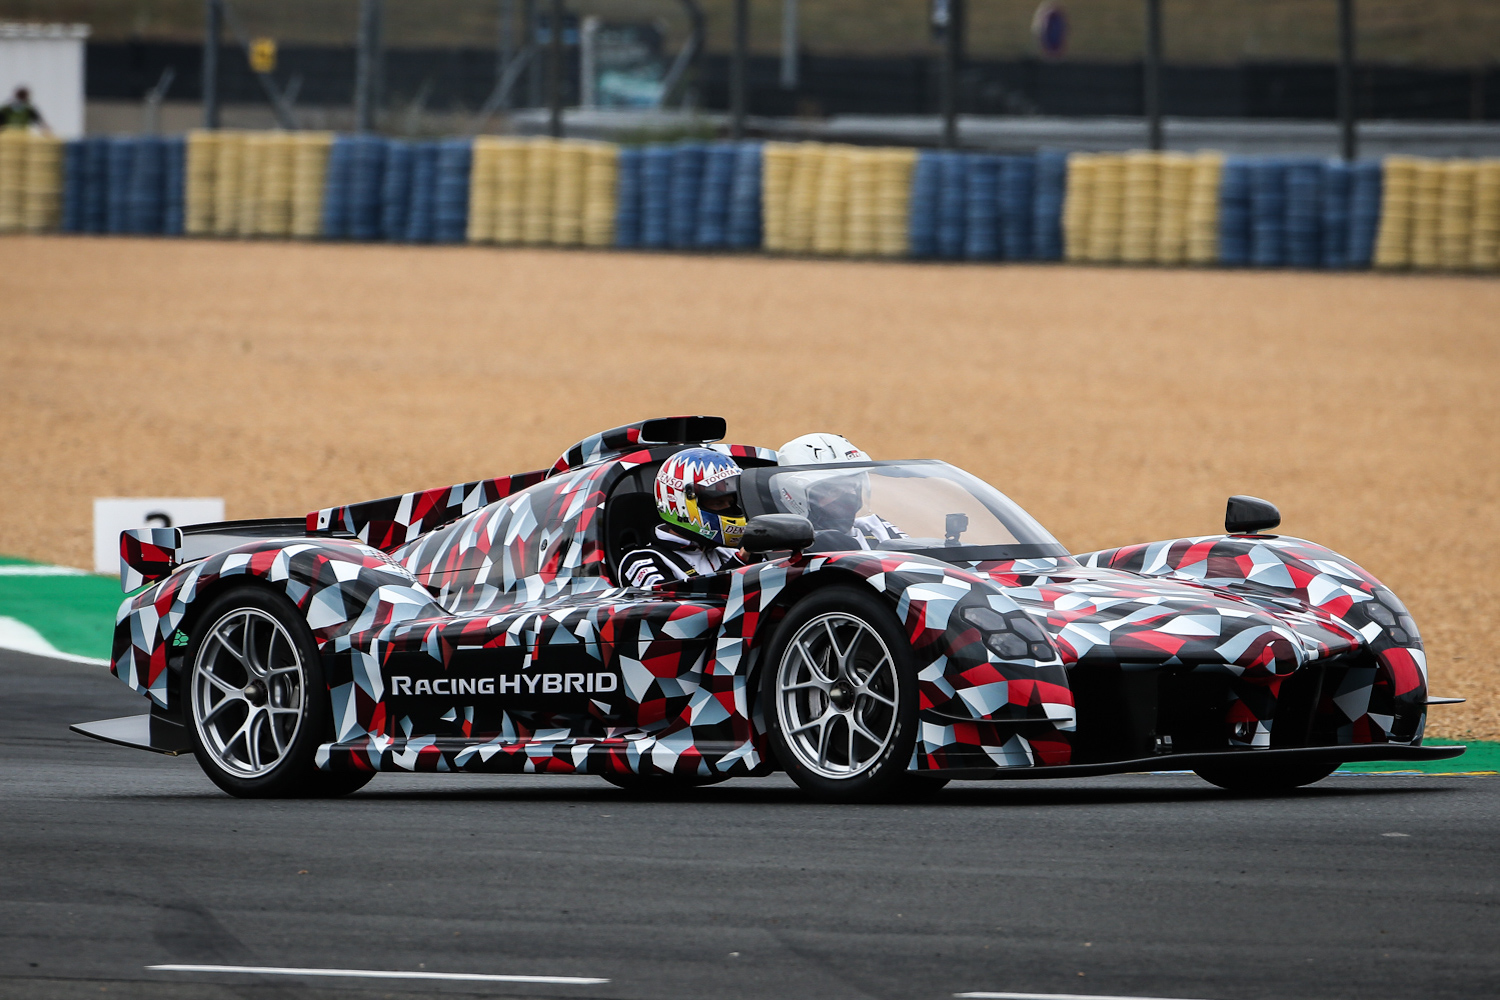 Car News | Toyota brings new hypercar to Le Mans | CompleteCar.ie